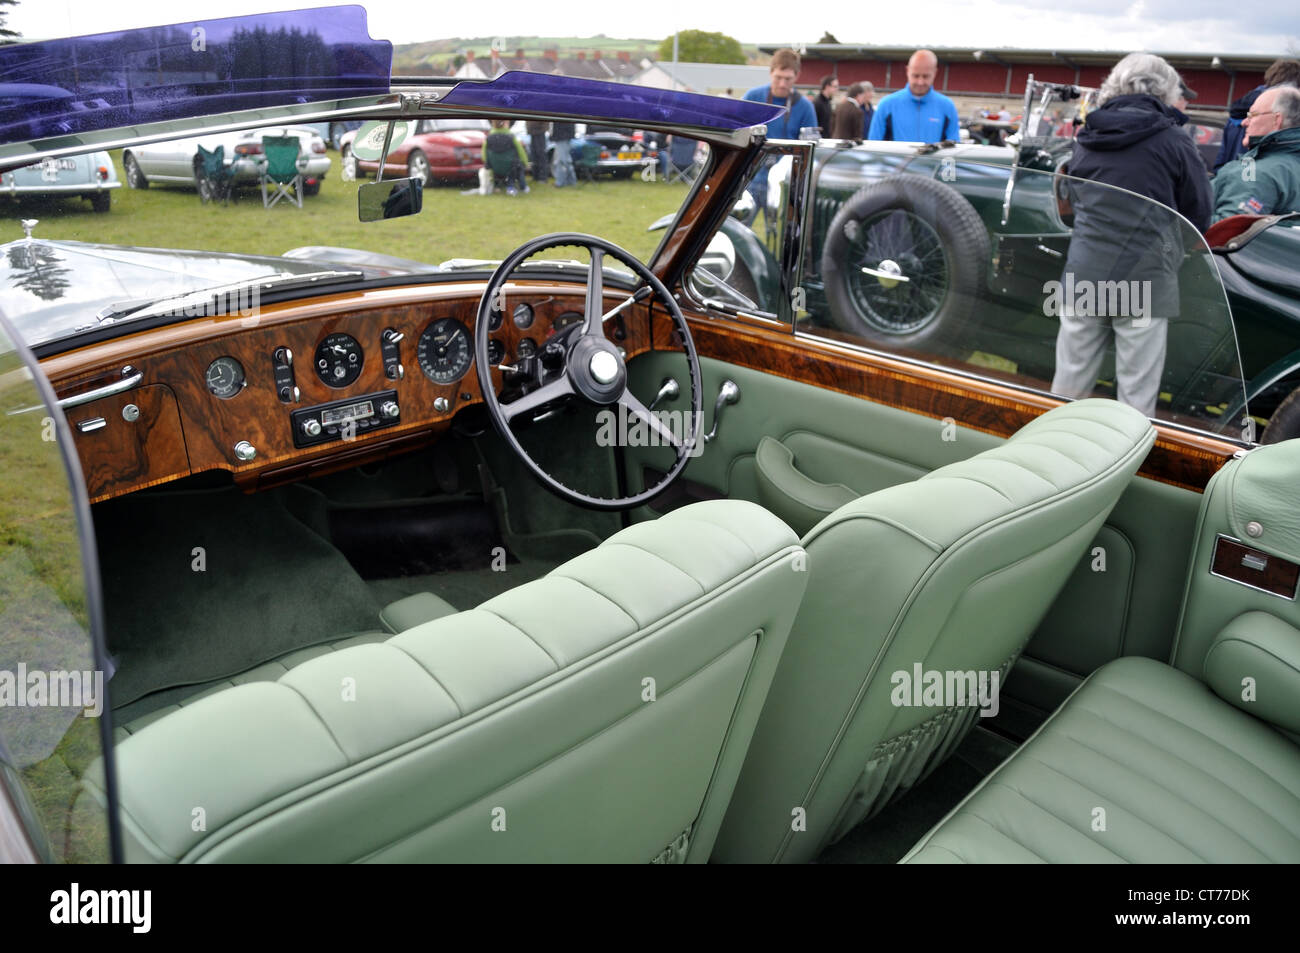 Leather And Walnut Interior Of Classic Rolls Royce At Car Show Stock Photo Alamy